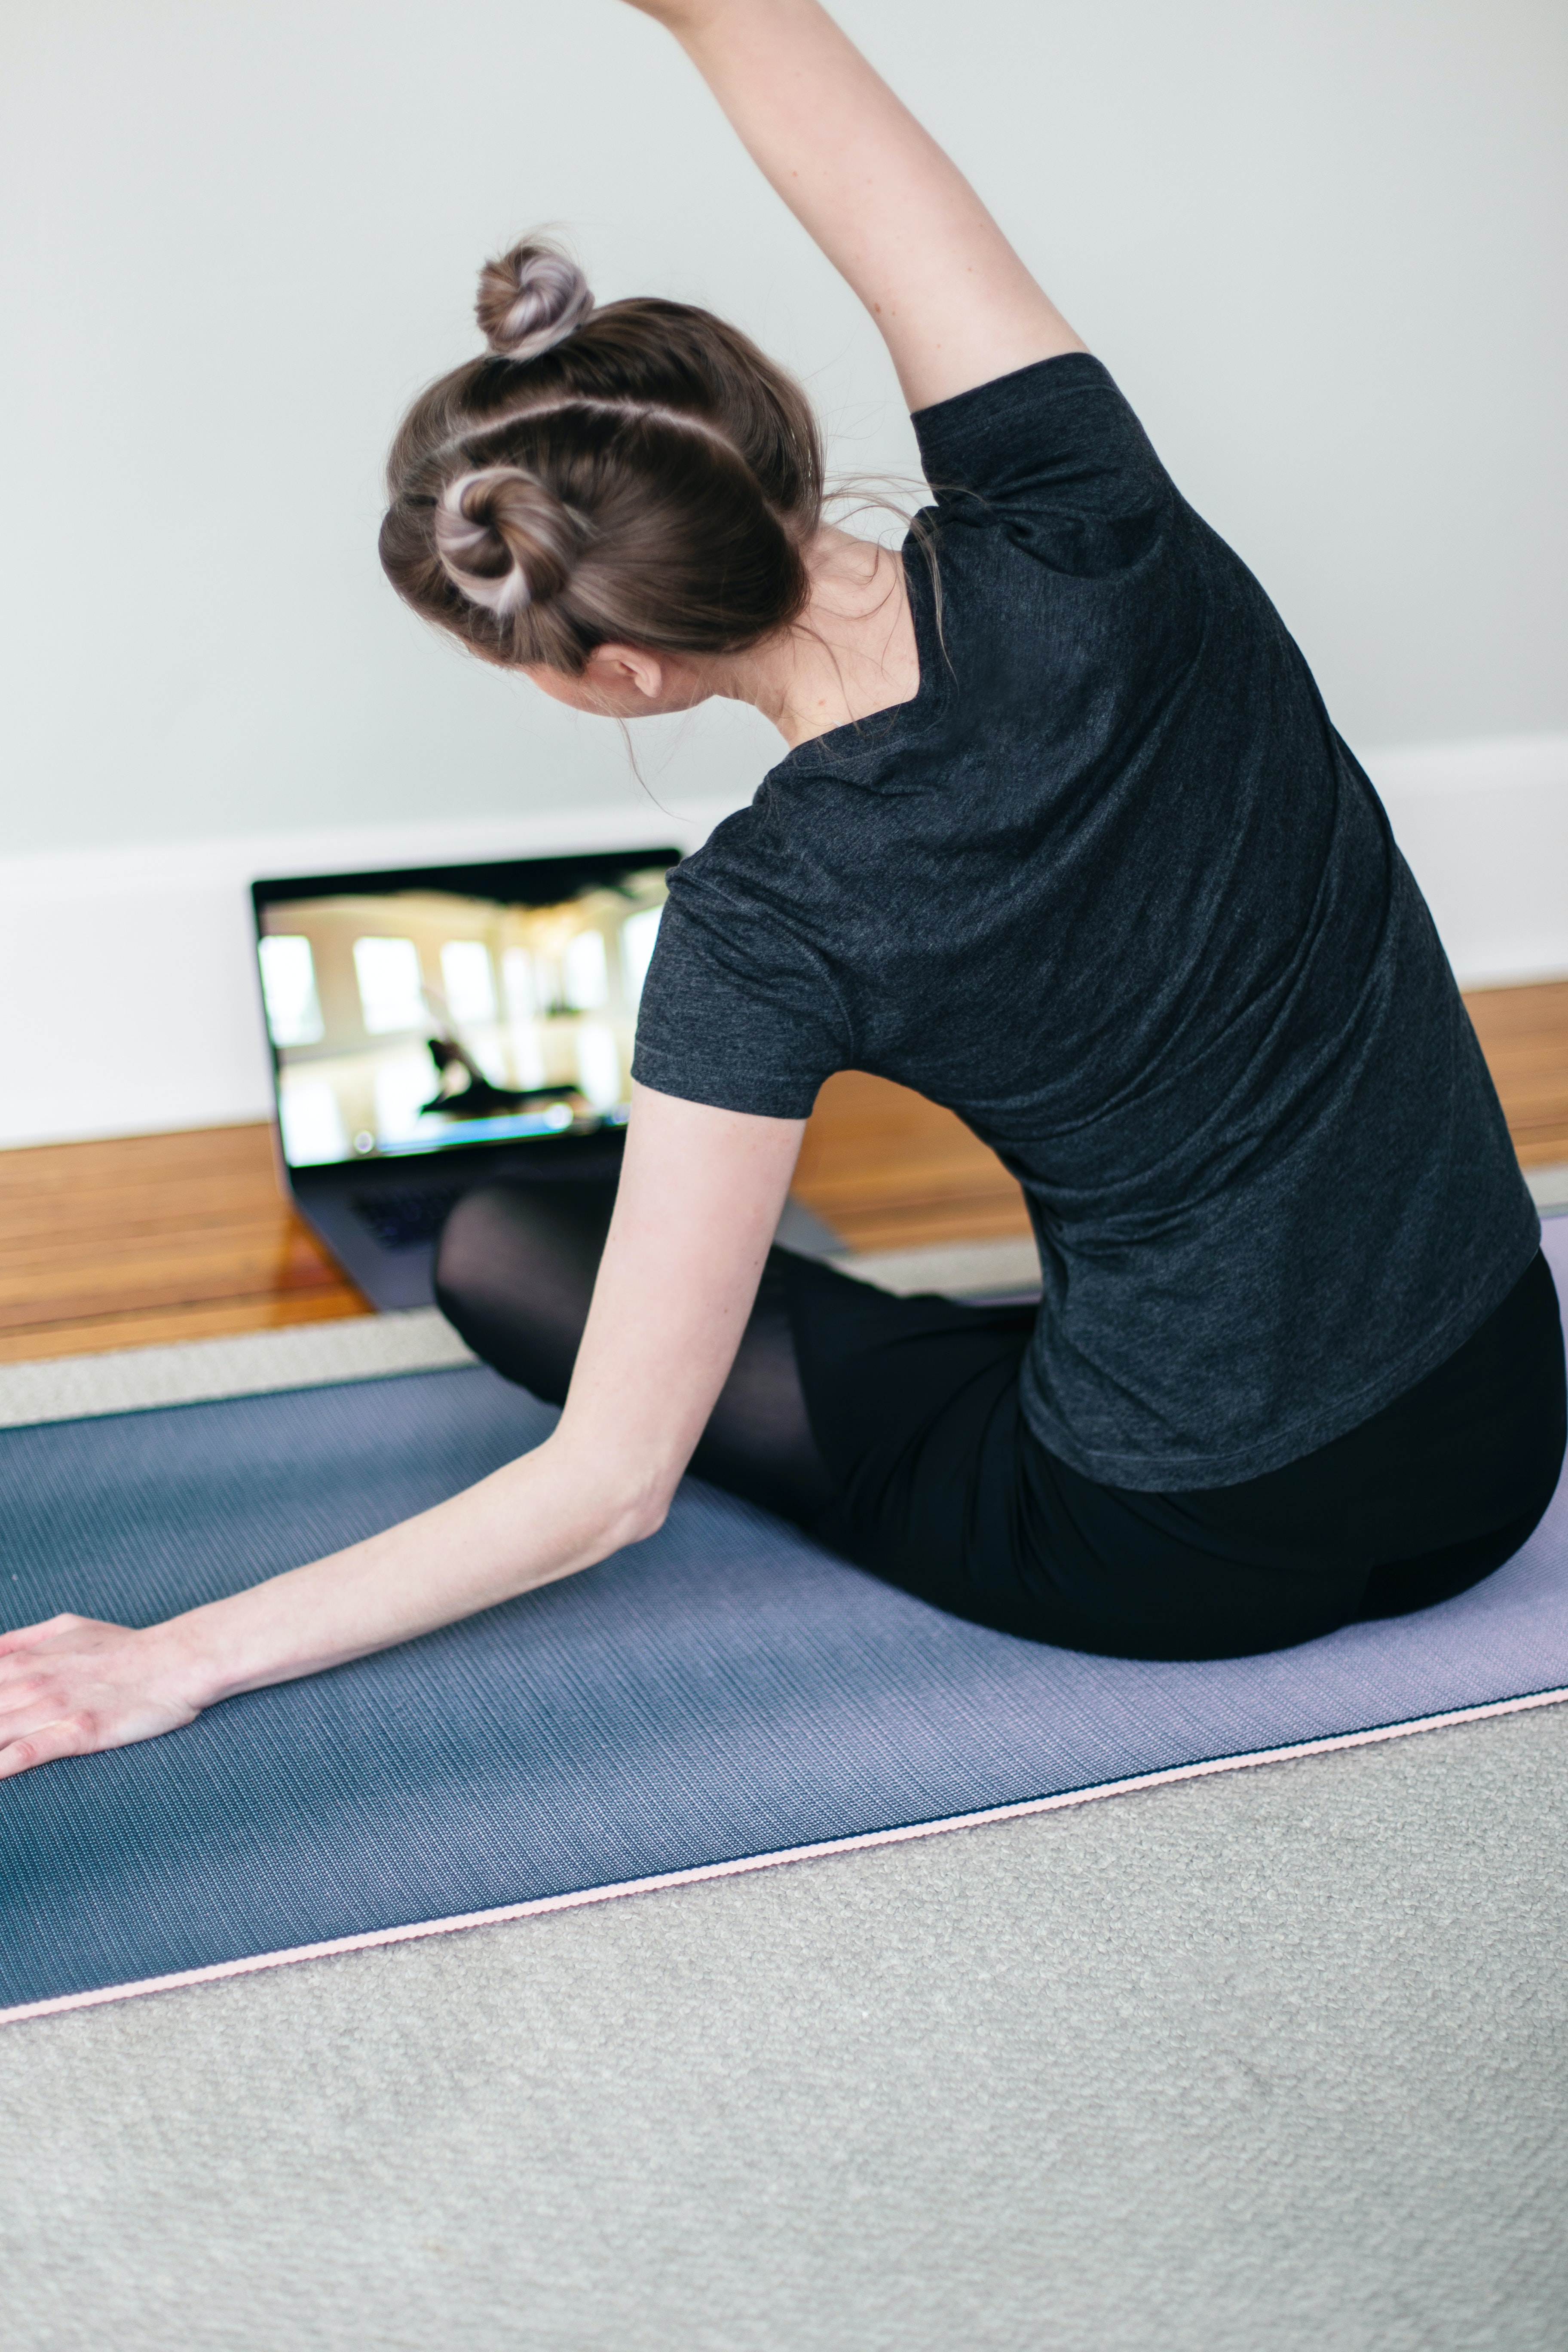 new year resolution exercise workout yoga virtual class workout at home mat girl localbini biniblog lifestyle tips